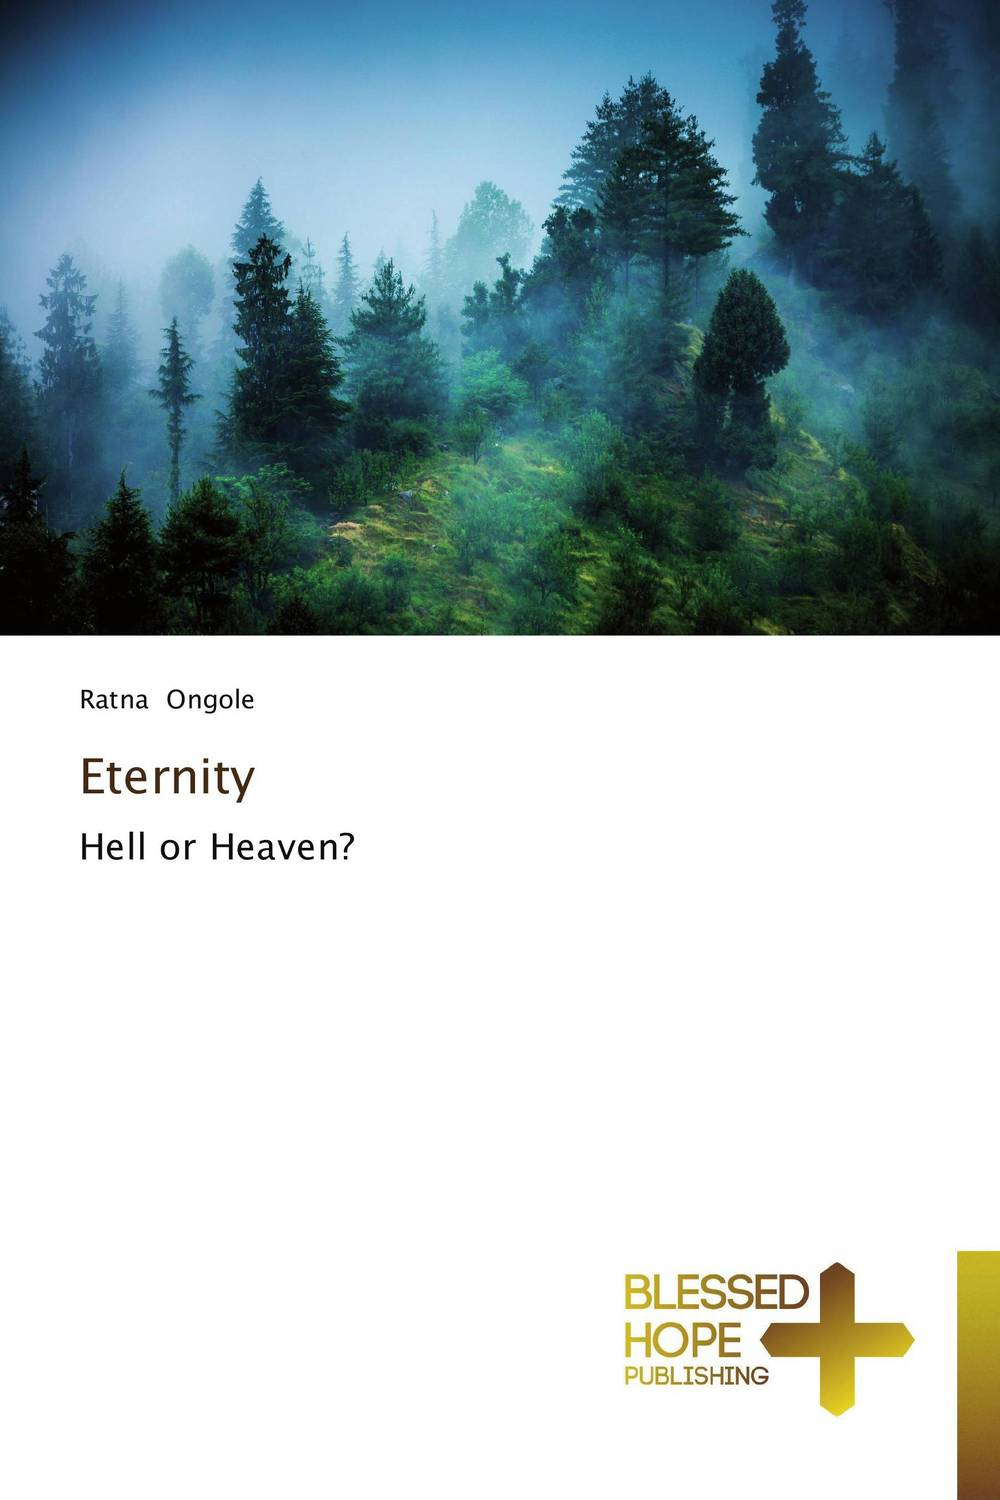 Eternity the powers that control the world